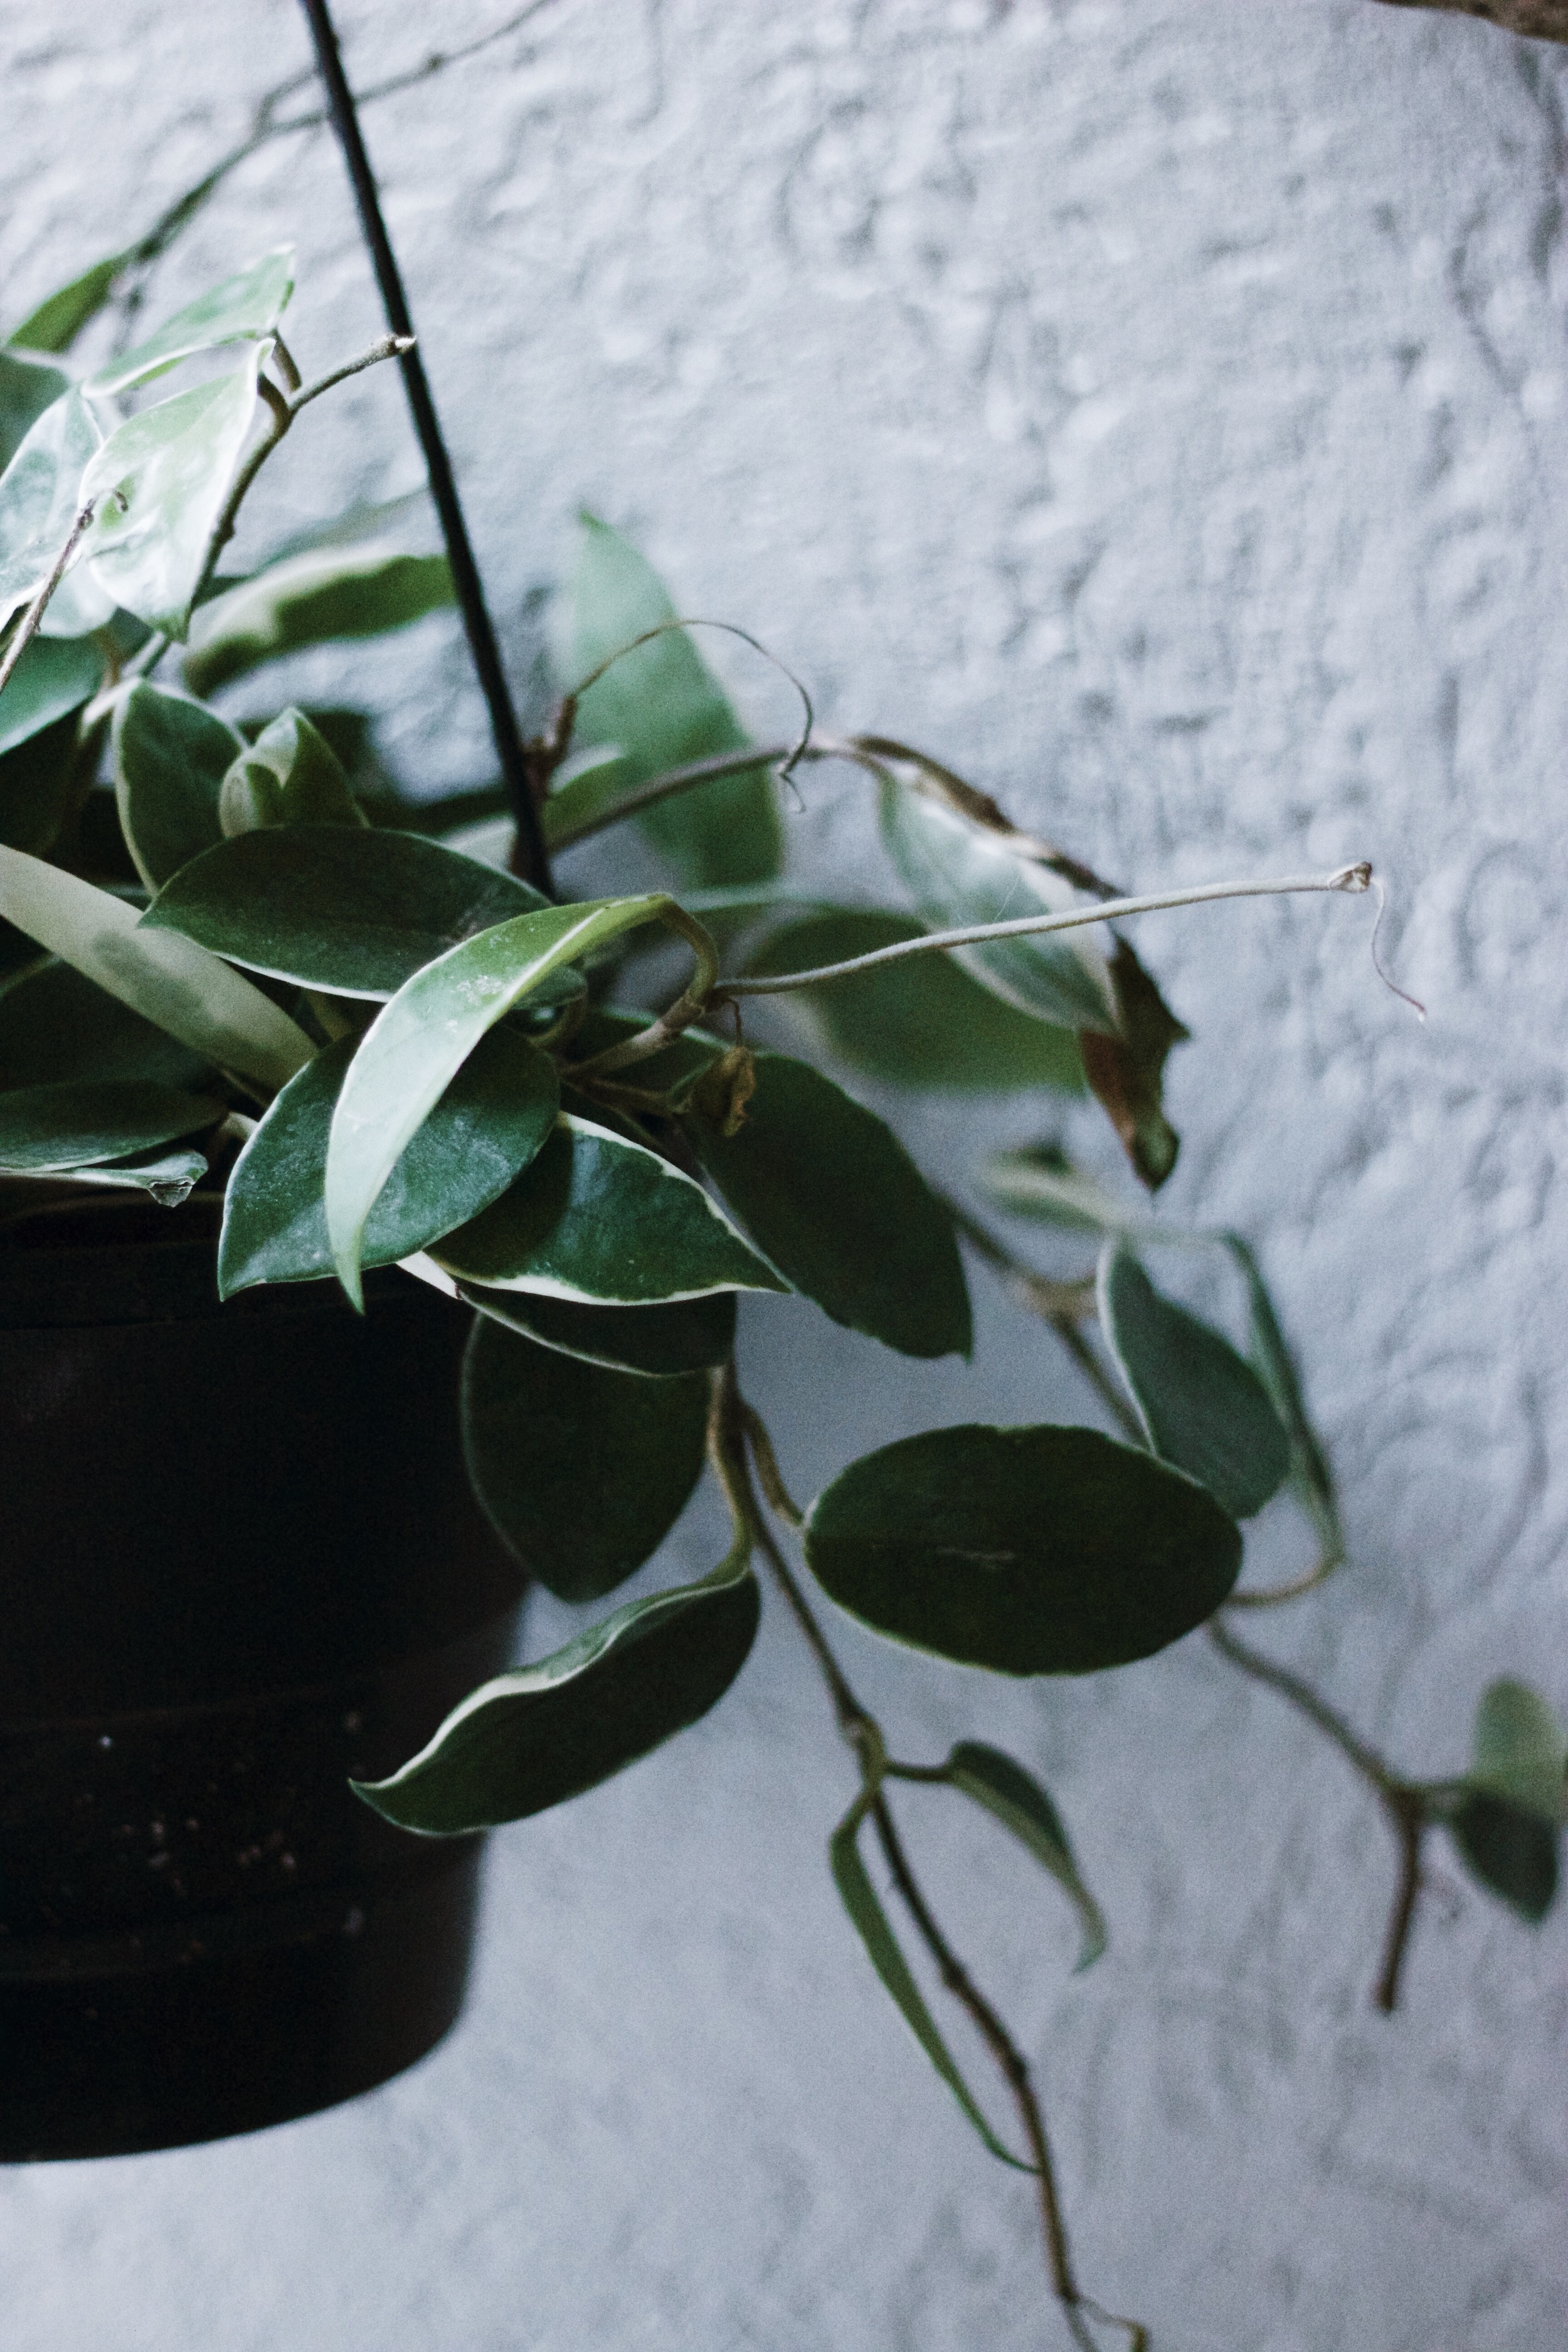 A variegated plant that I like but I don't know the name of. Do you? Leave it in the comments so I can be free of wonder.